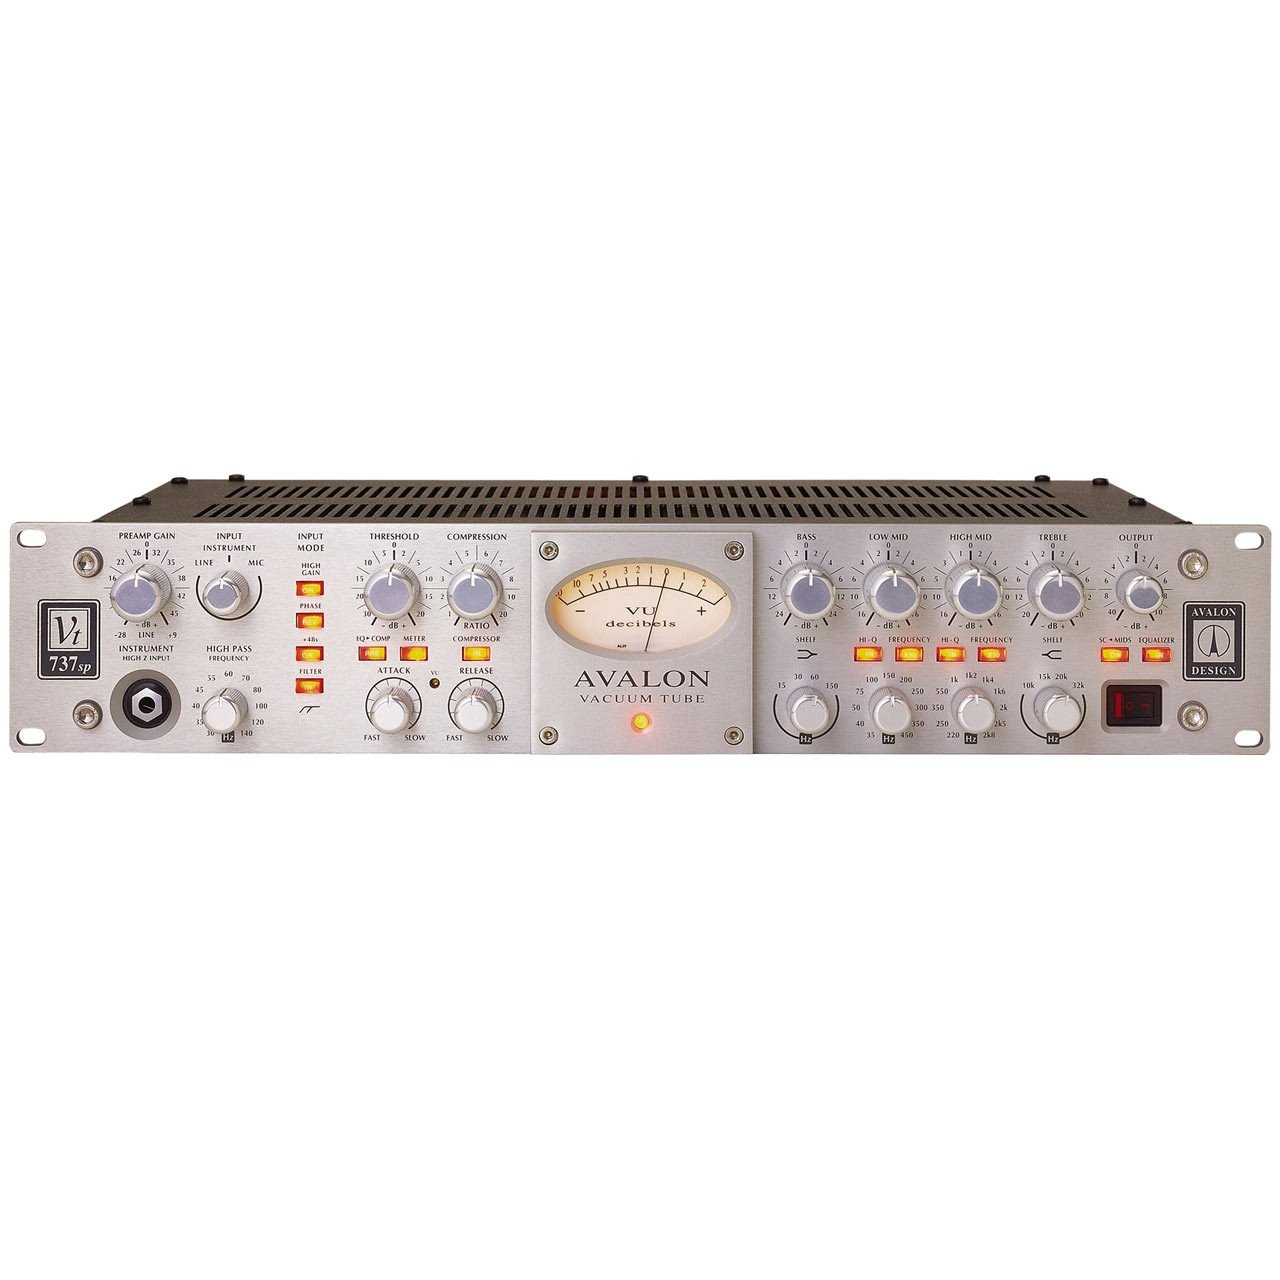 Preamps/Channel Strips - Avalon Design VT-737SP Channel Strip SILVER